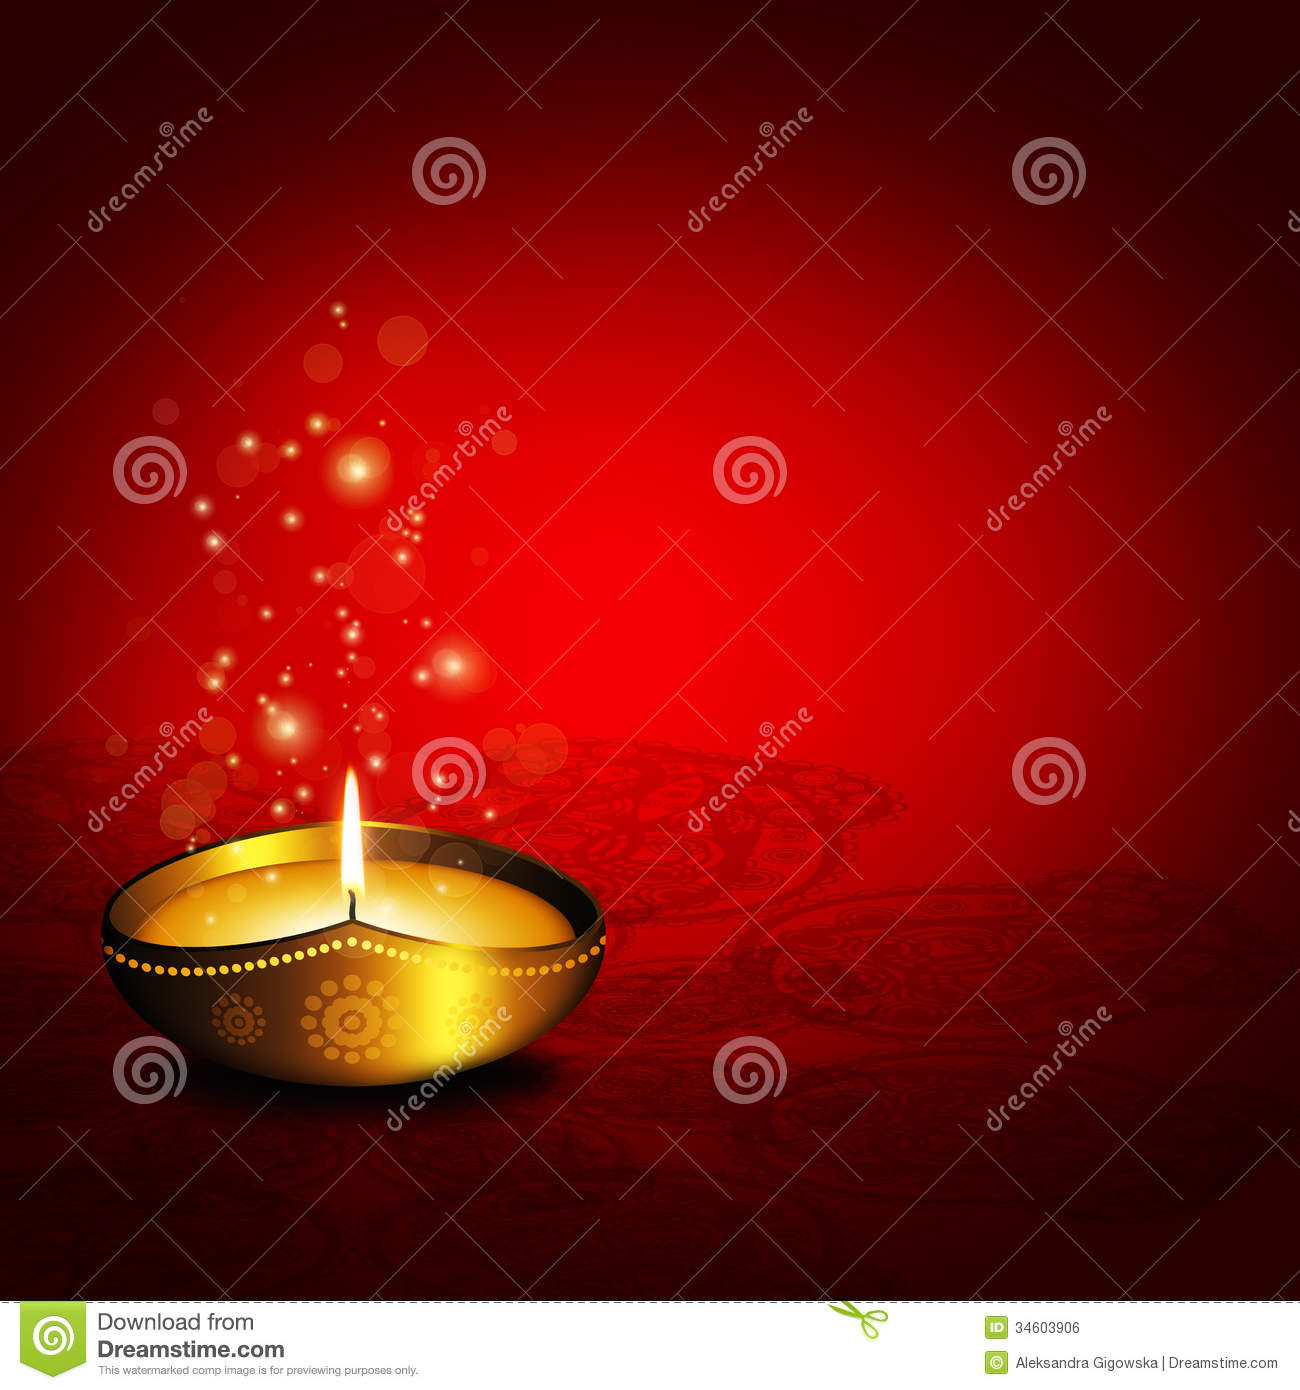 Oil Lamp With Plac For Diwali Greetings Over Dark Background Stock